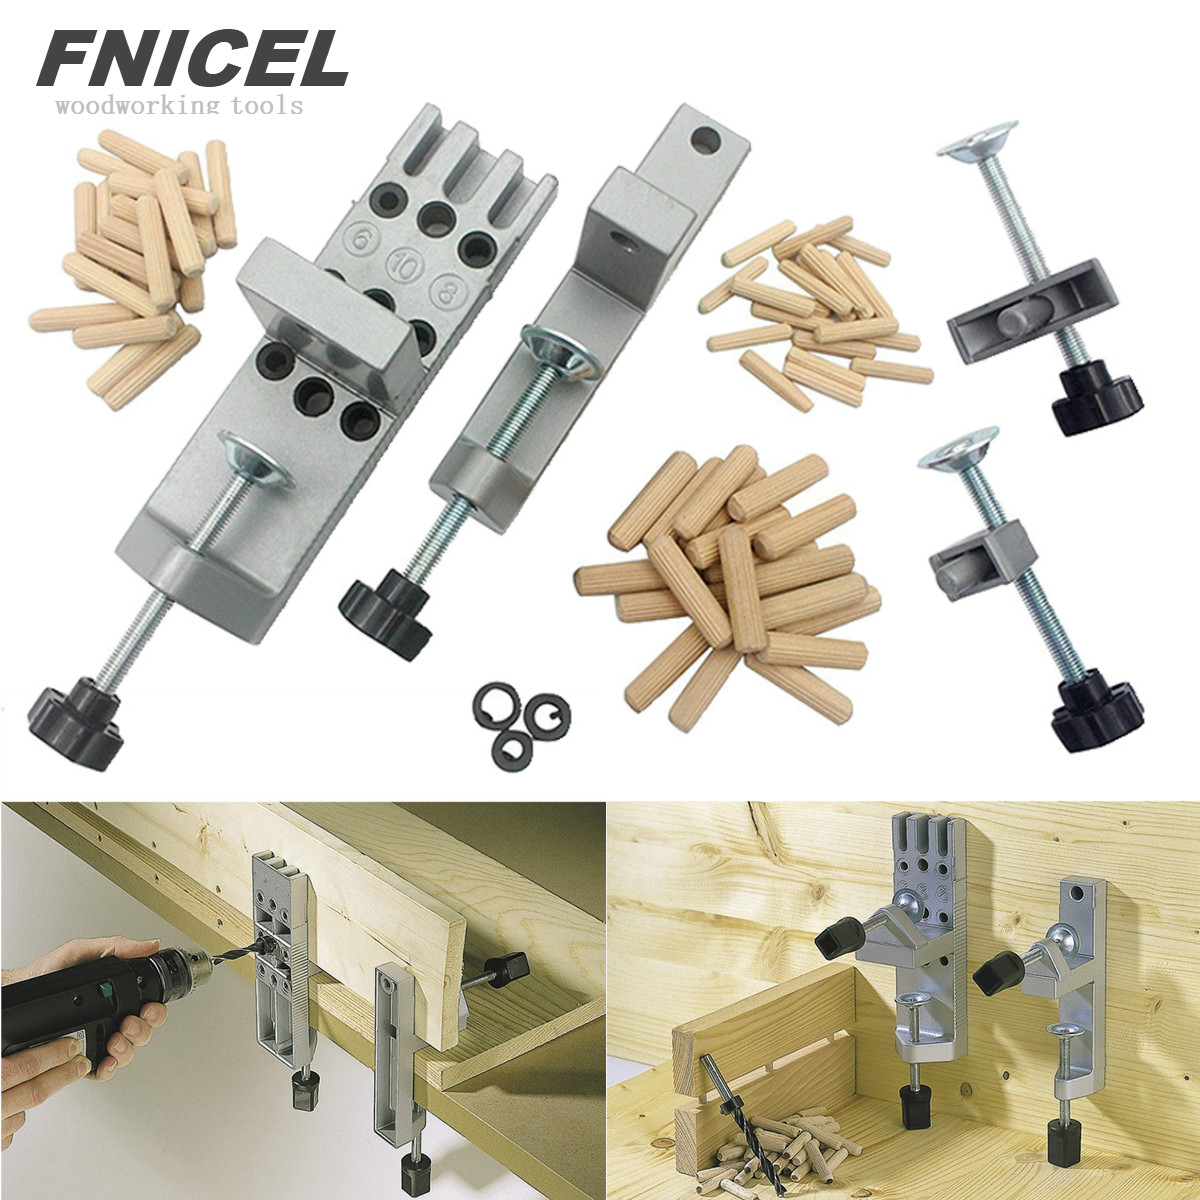 1 Set Dowelling Jig Woodworking Joinery Carpenters Wood Dowel Joints Dowelling Jig Tool Set Drilling Locator Drilling Guide Kit